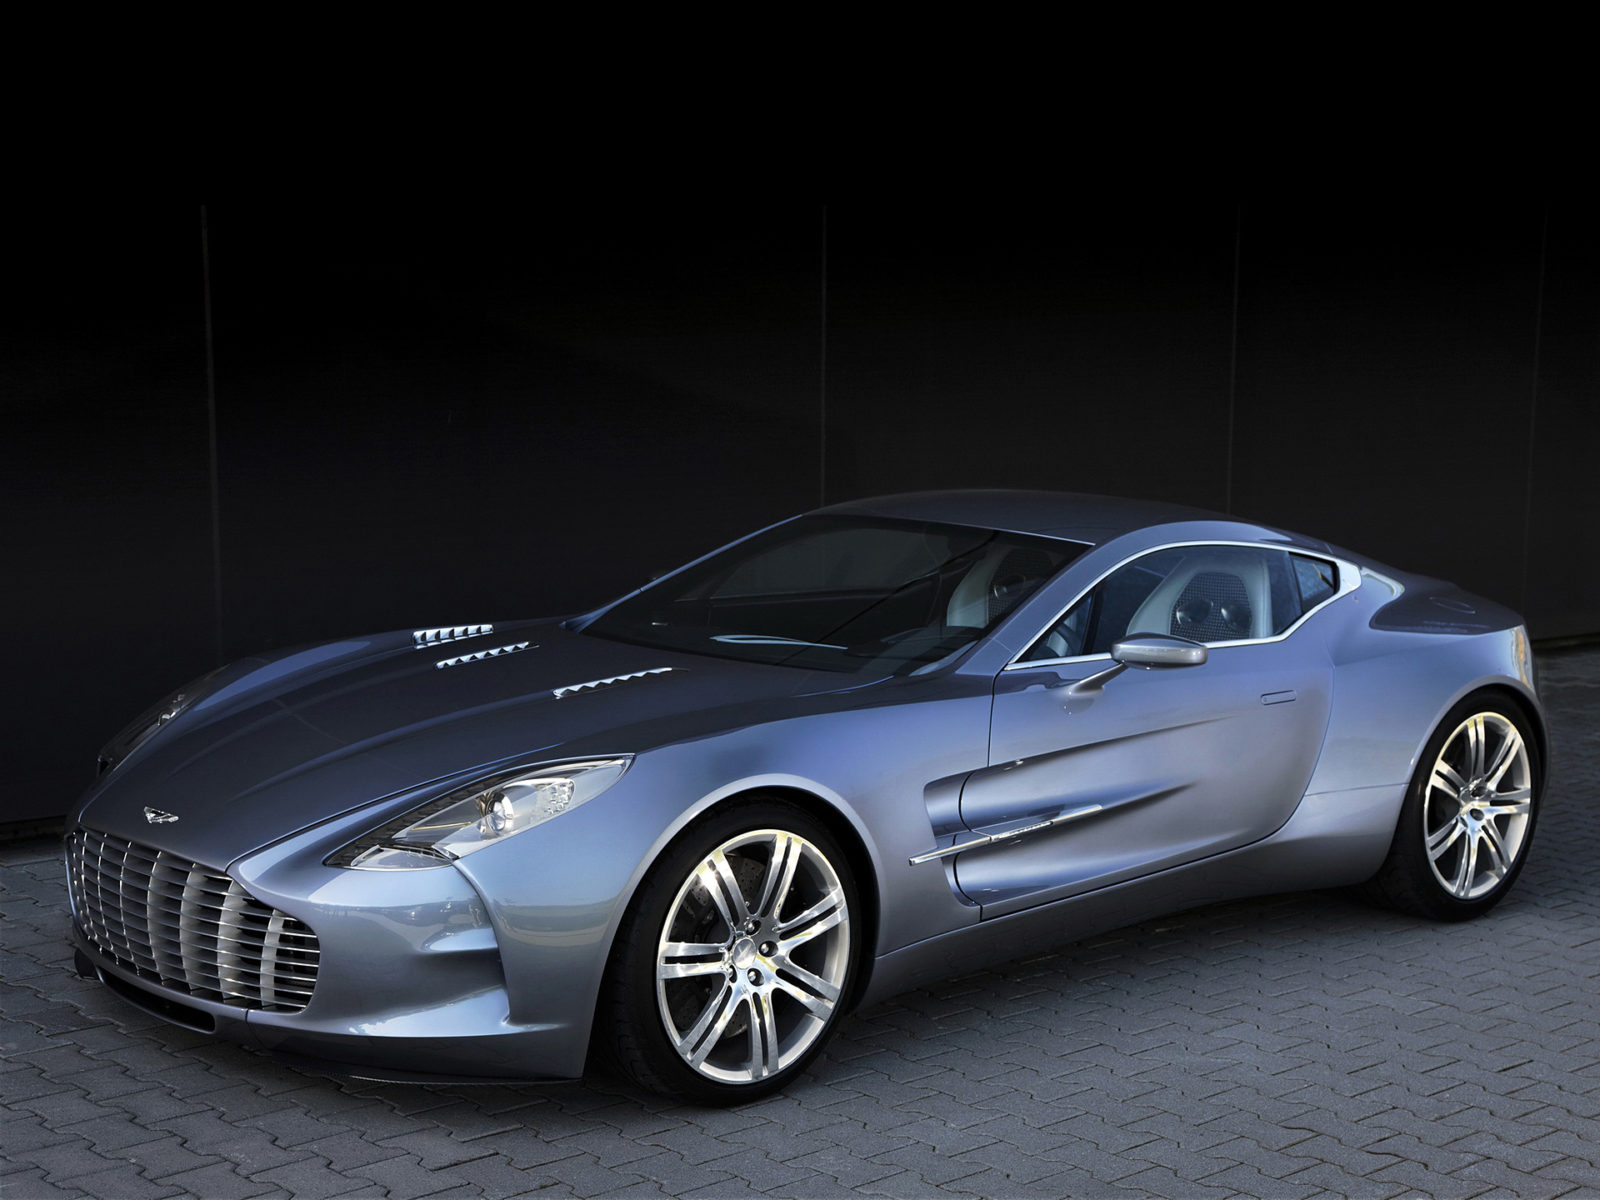 2010 Aston Martin One 77 Wallpapers Viruscars